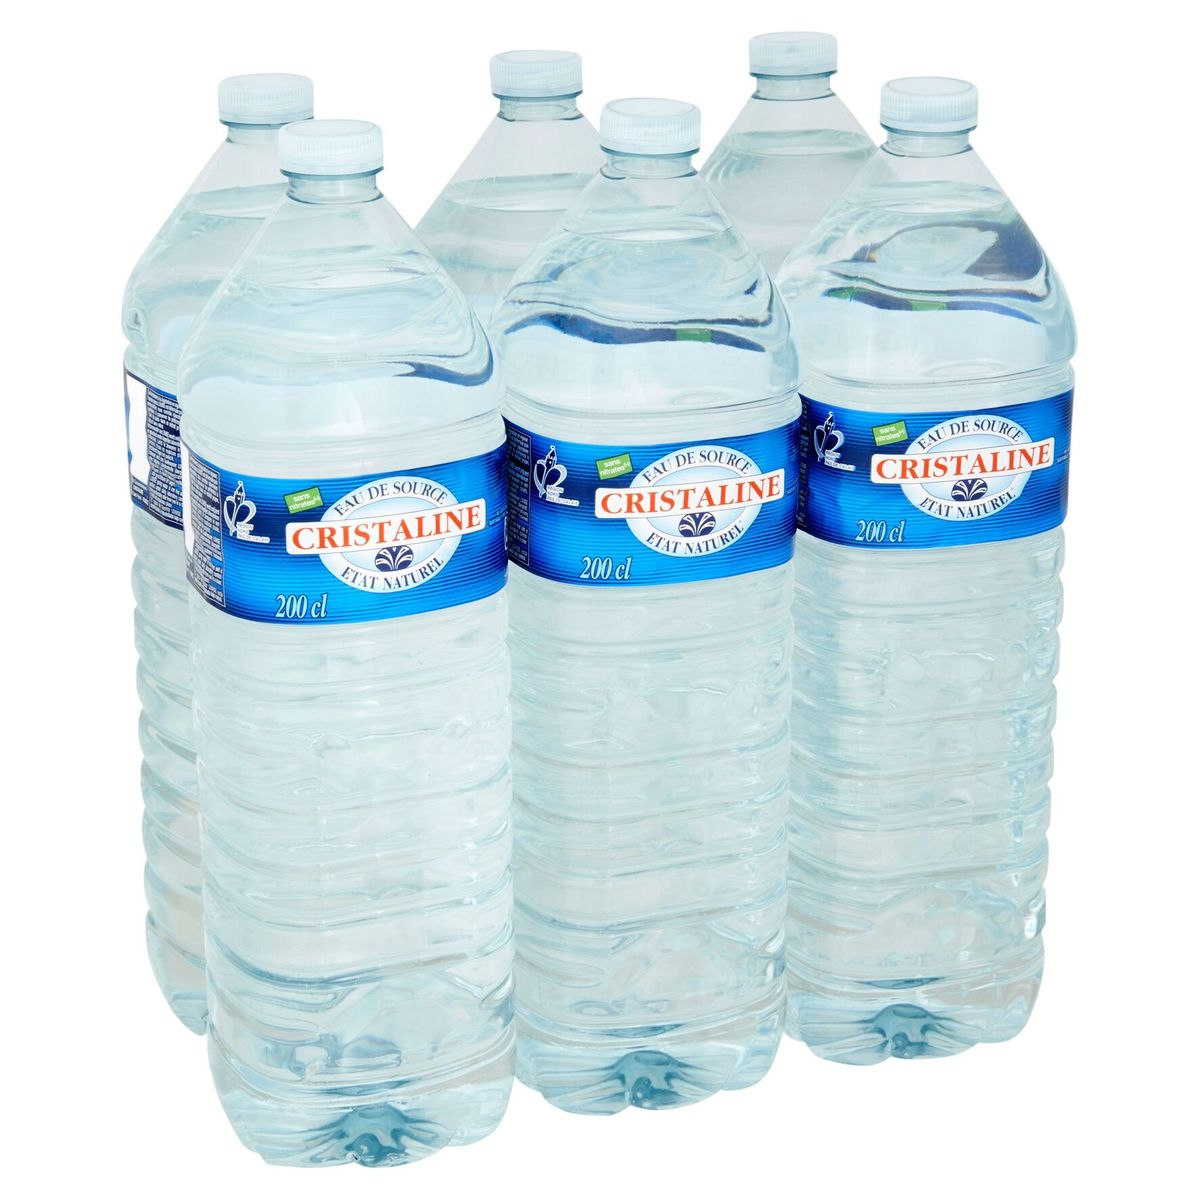 Cristaline Louise Bronwater 6 x 200 cl